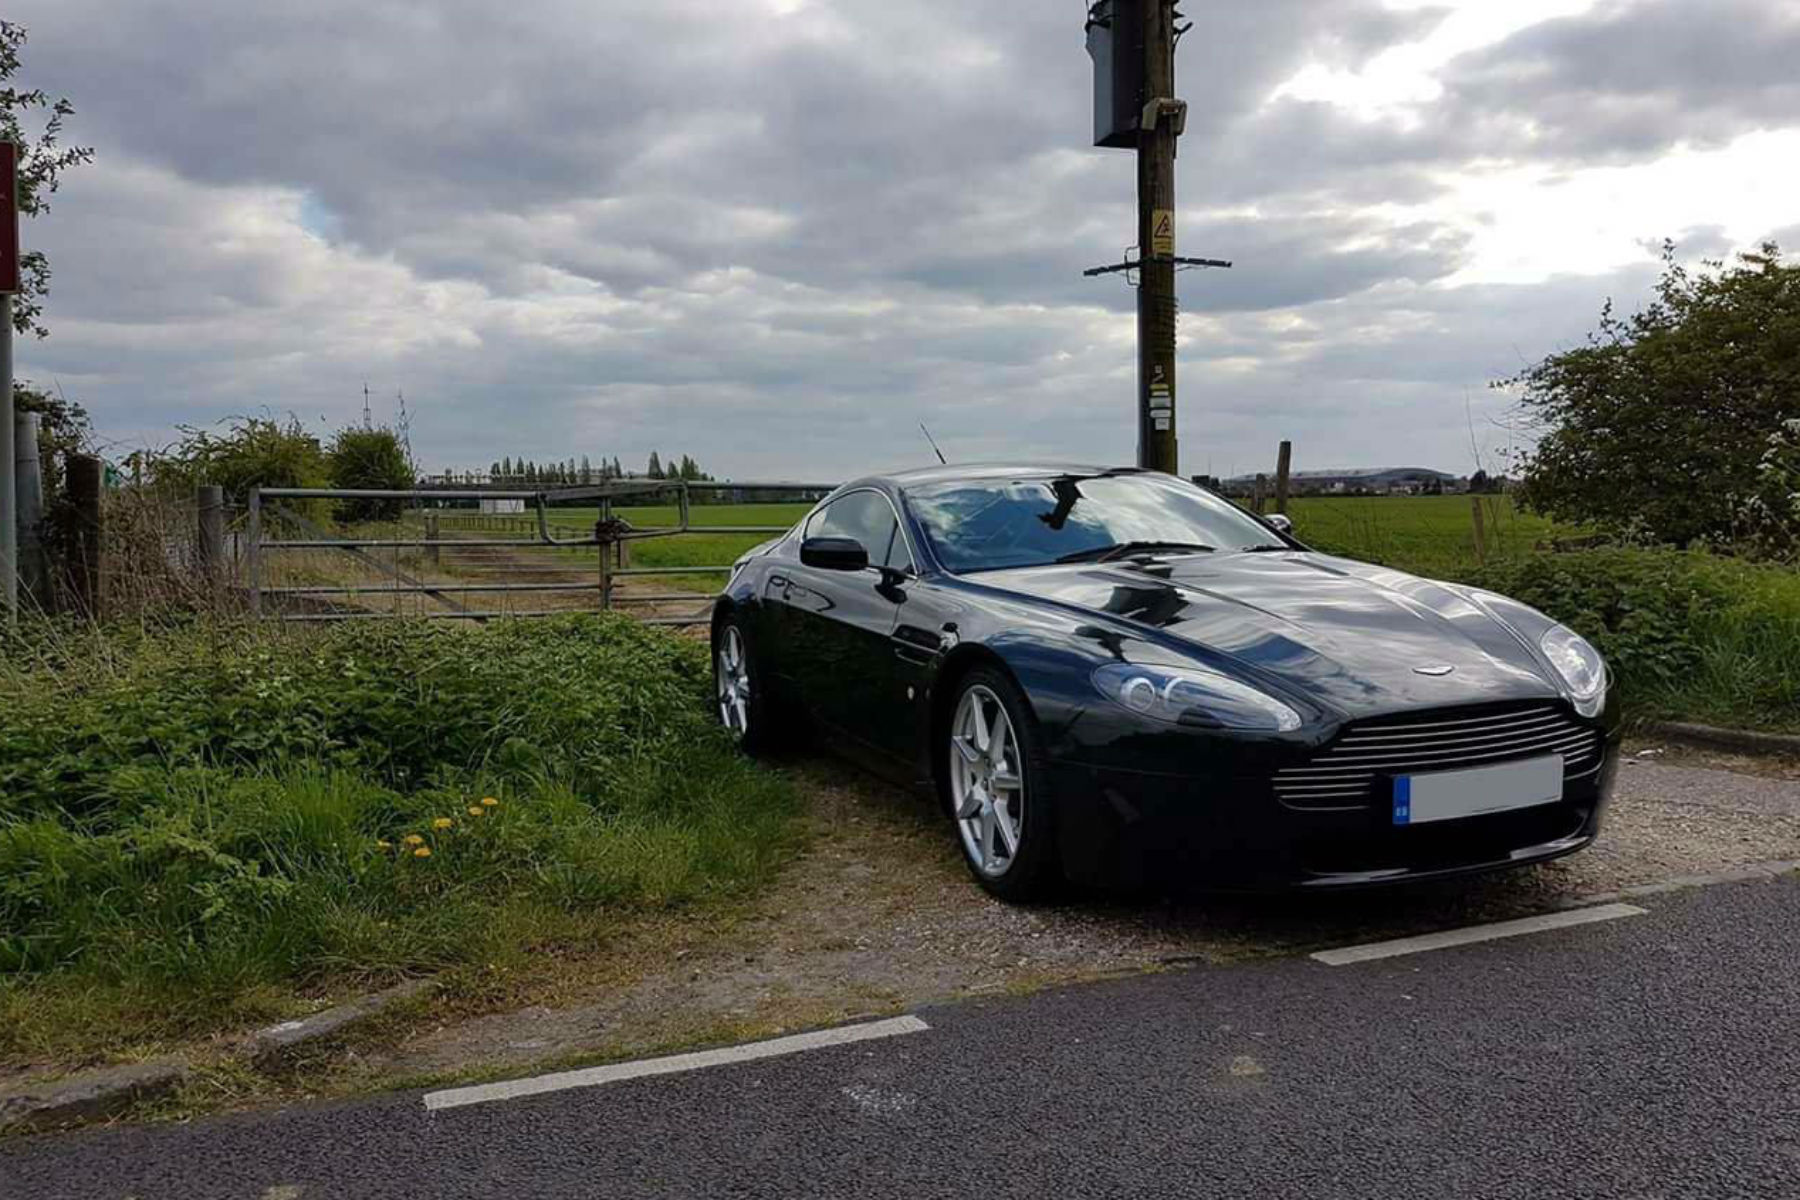 You can now buy an Aston Martin V8 Vantage for £30,000